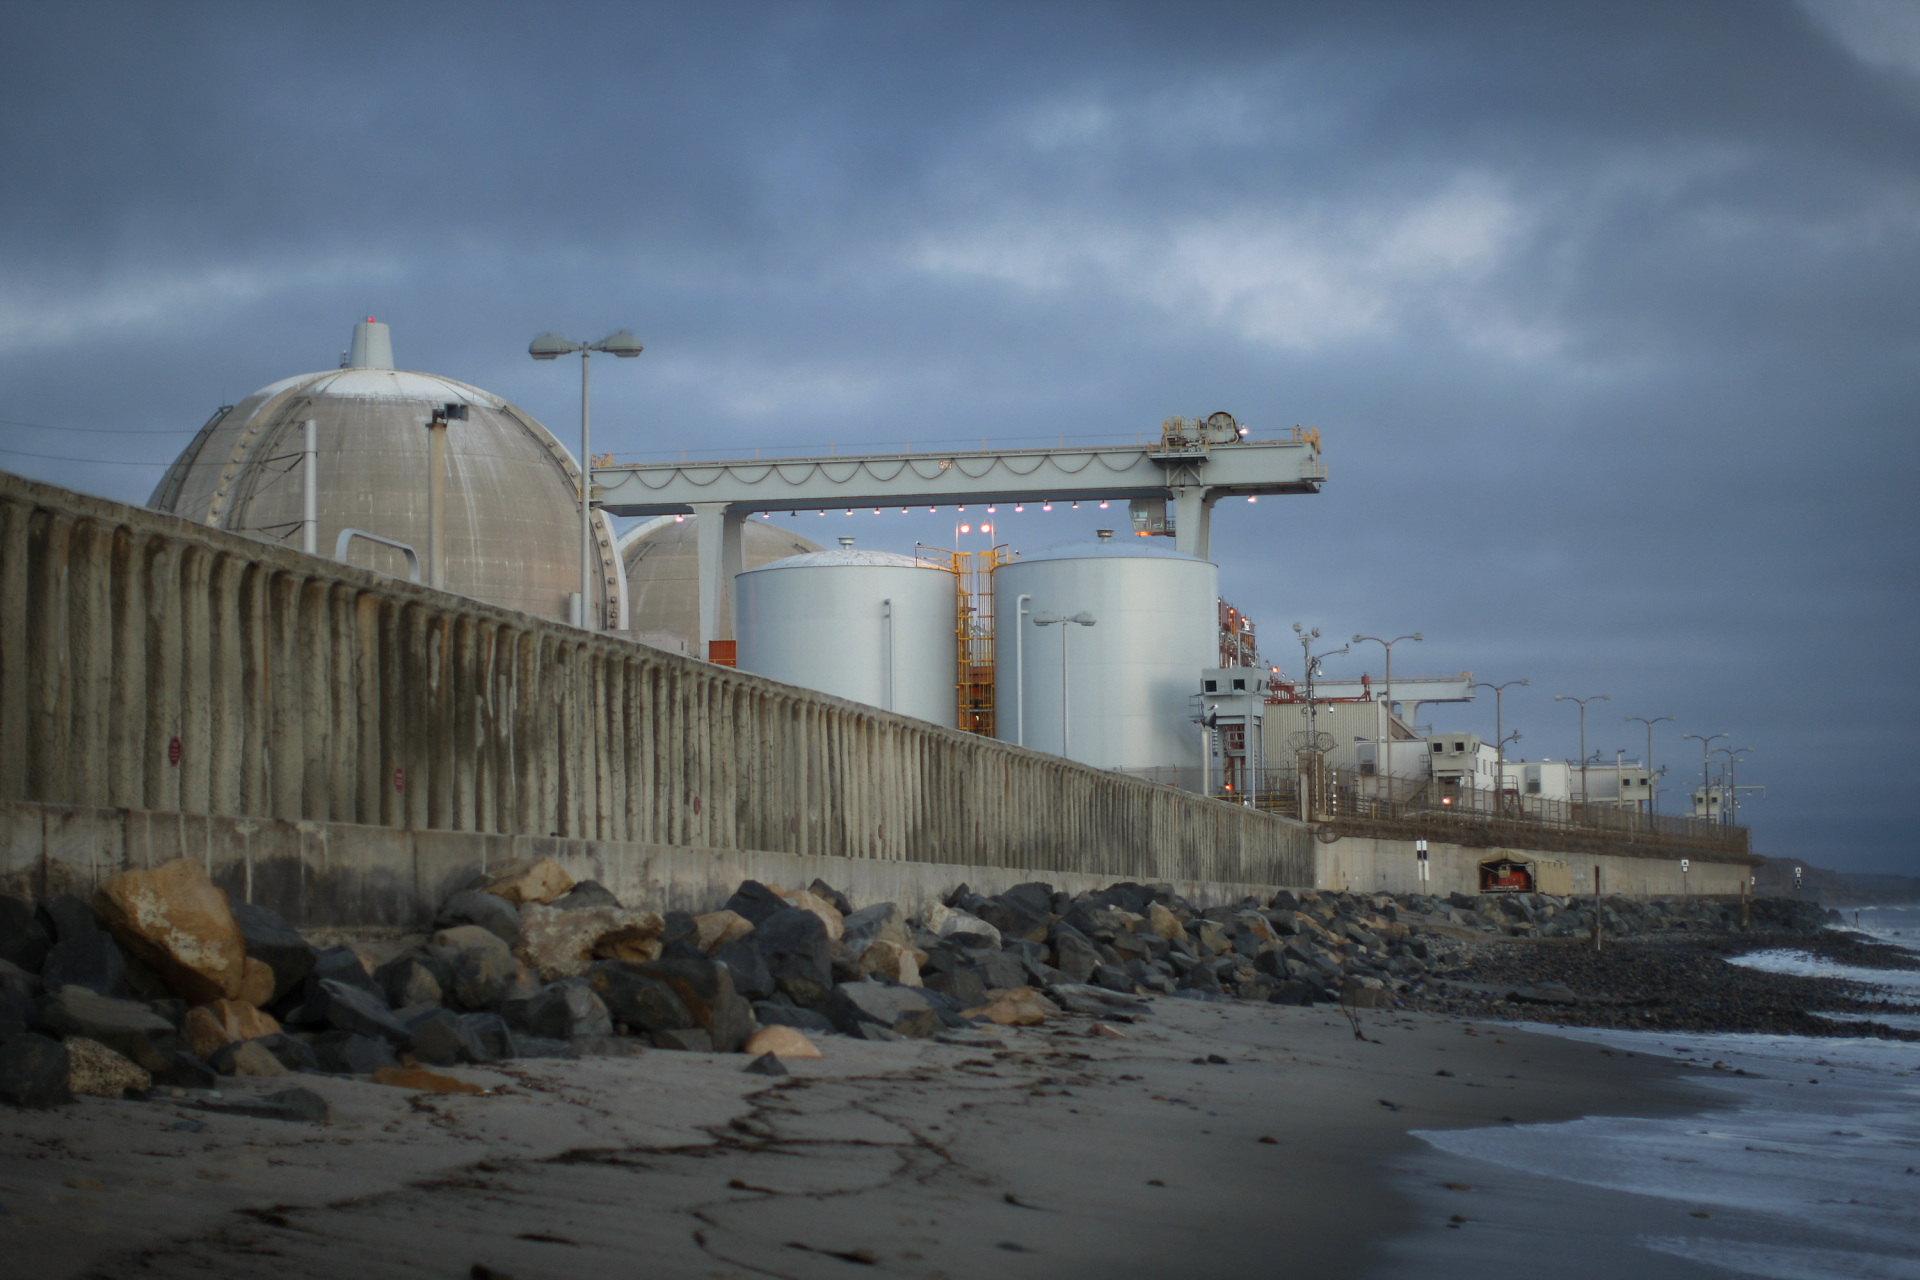 Ocean waves come ashore near the San Onofre Nuclear Generating Station.